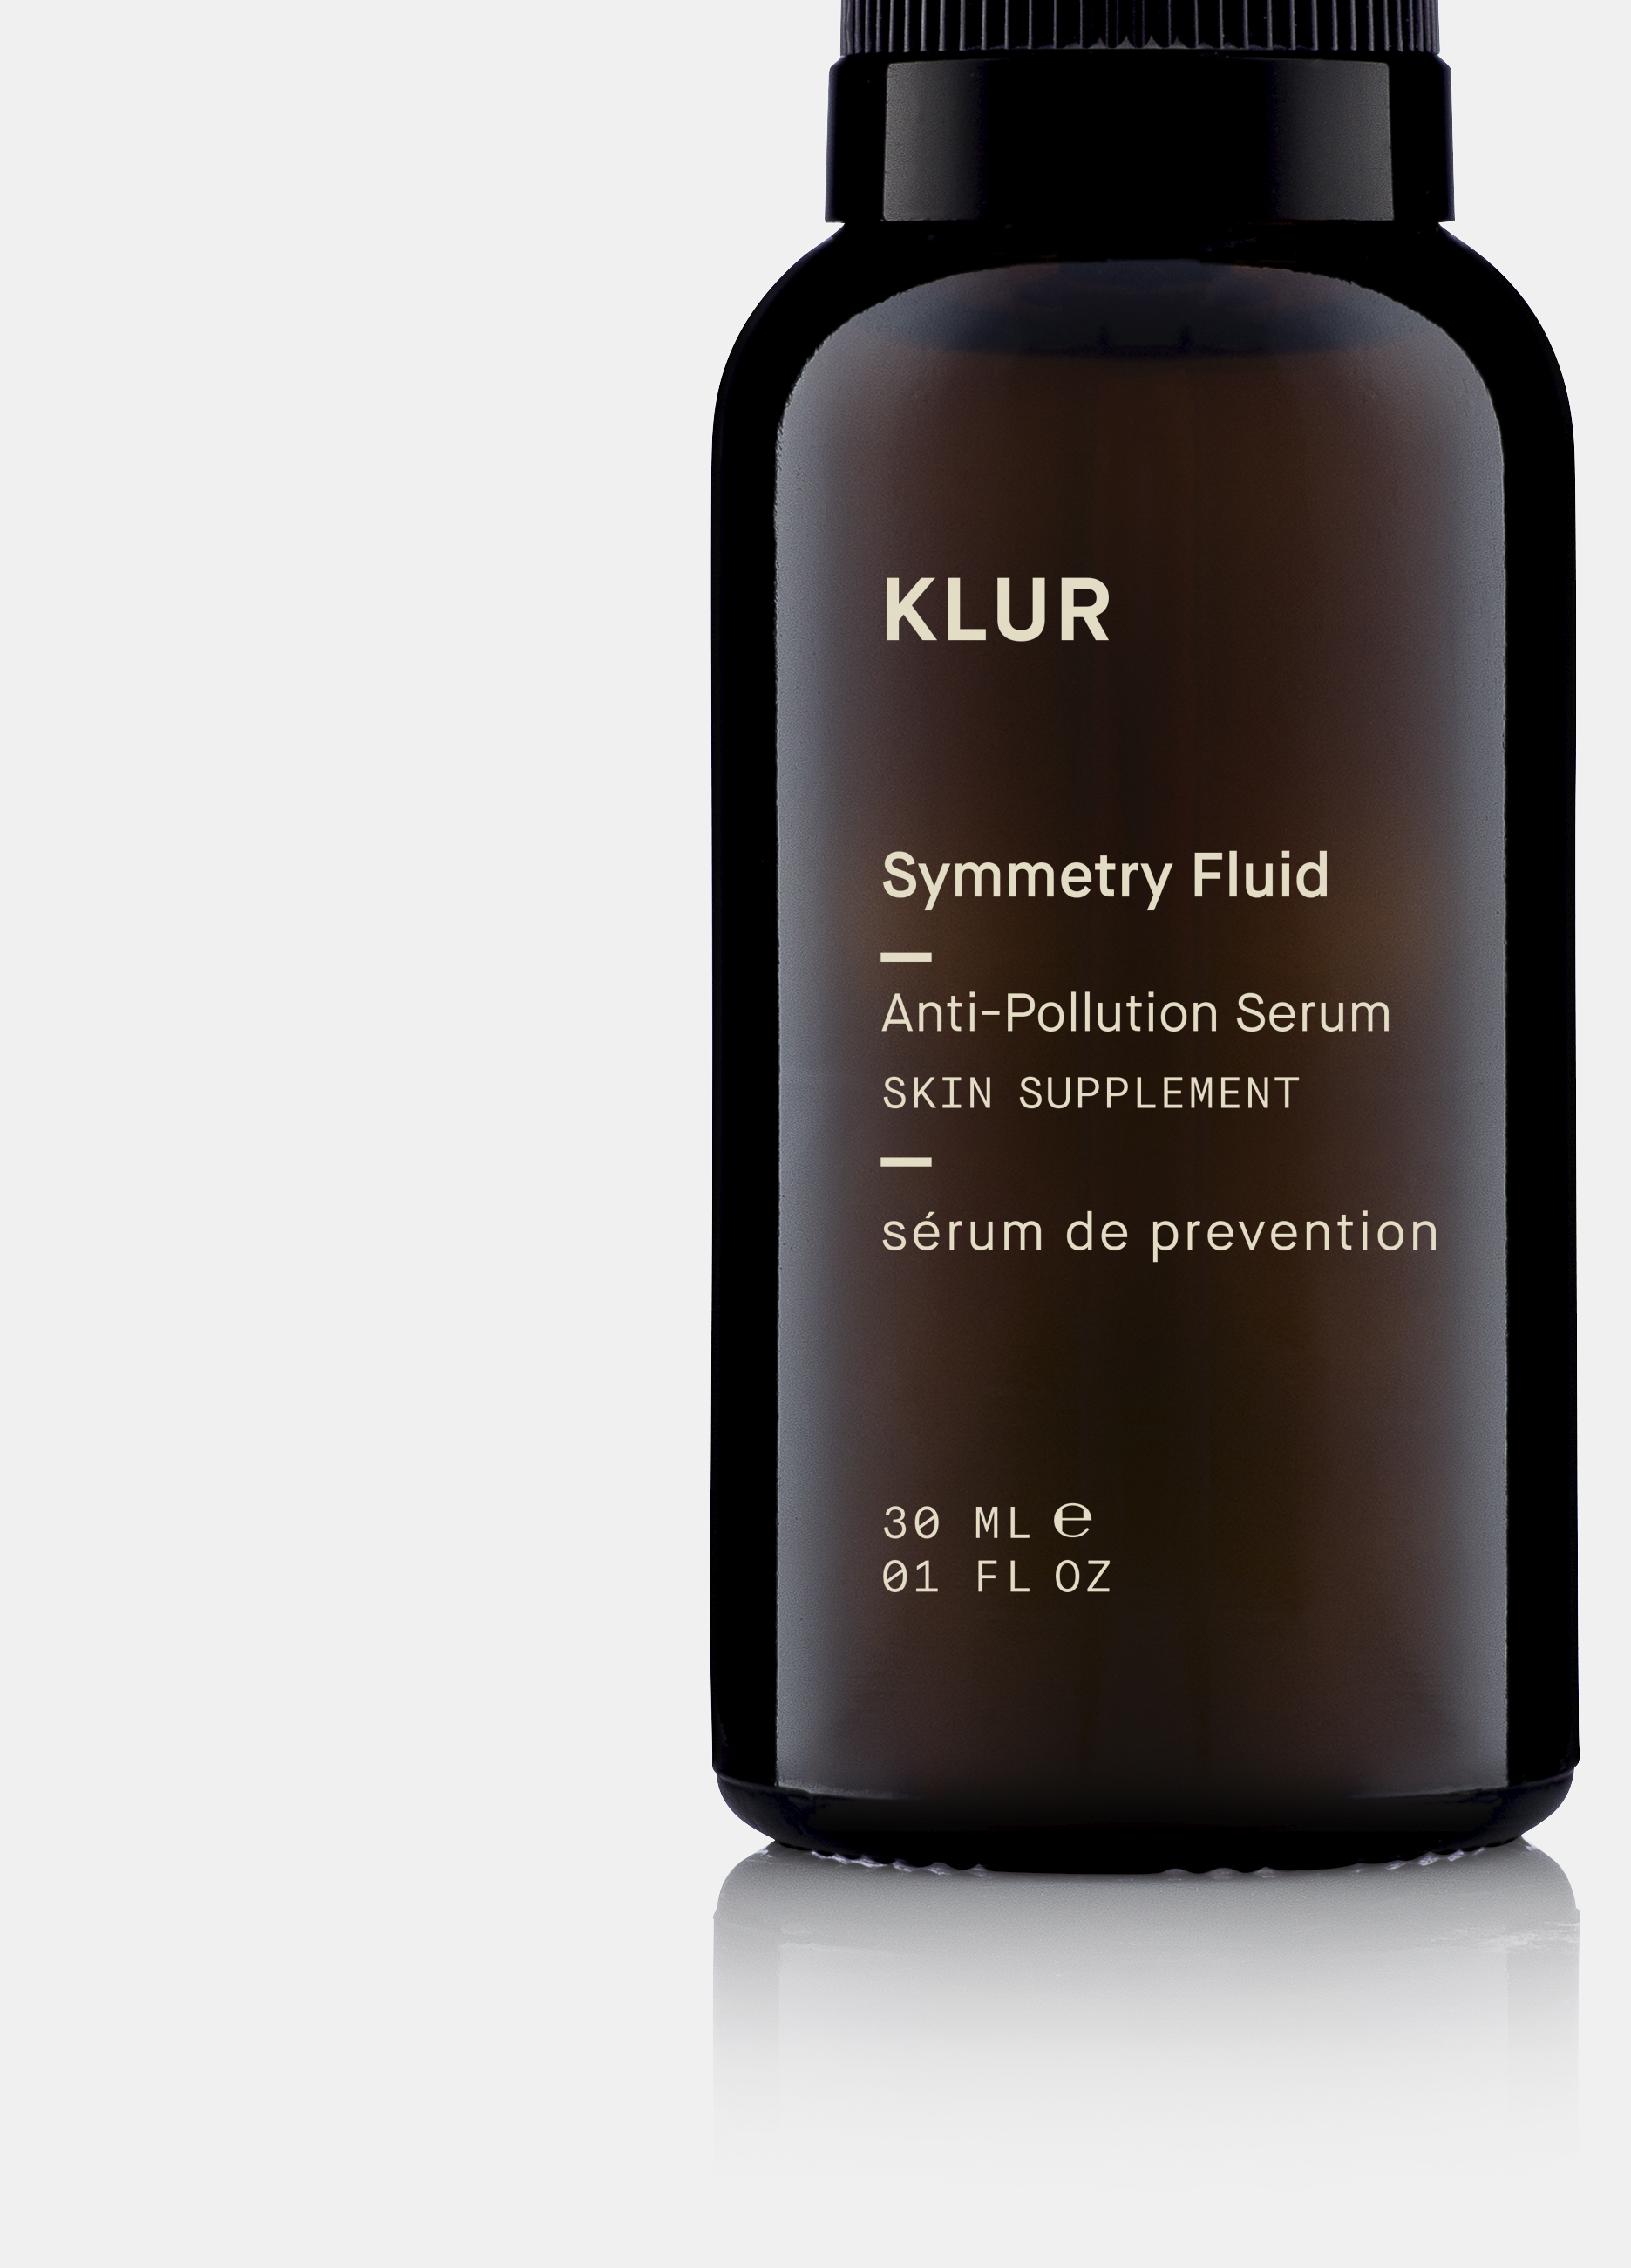 Klur / Symmetry Fluid